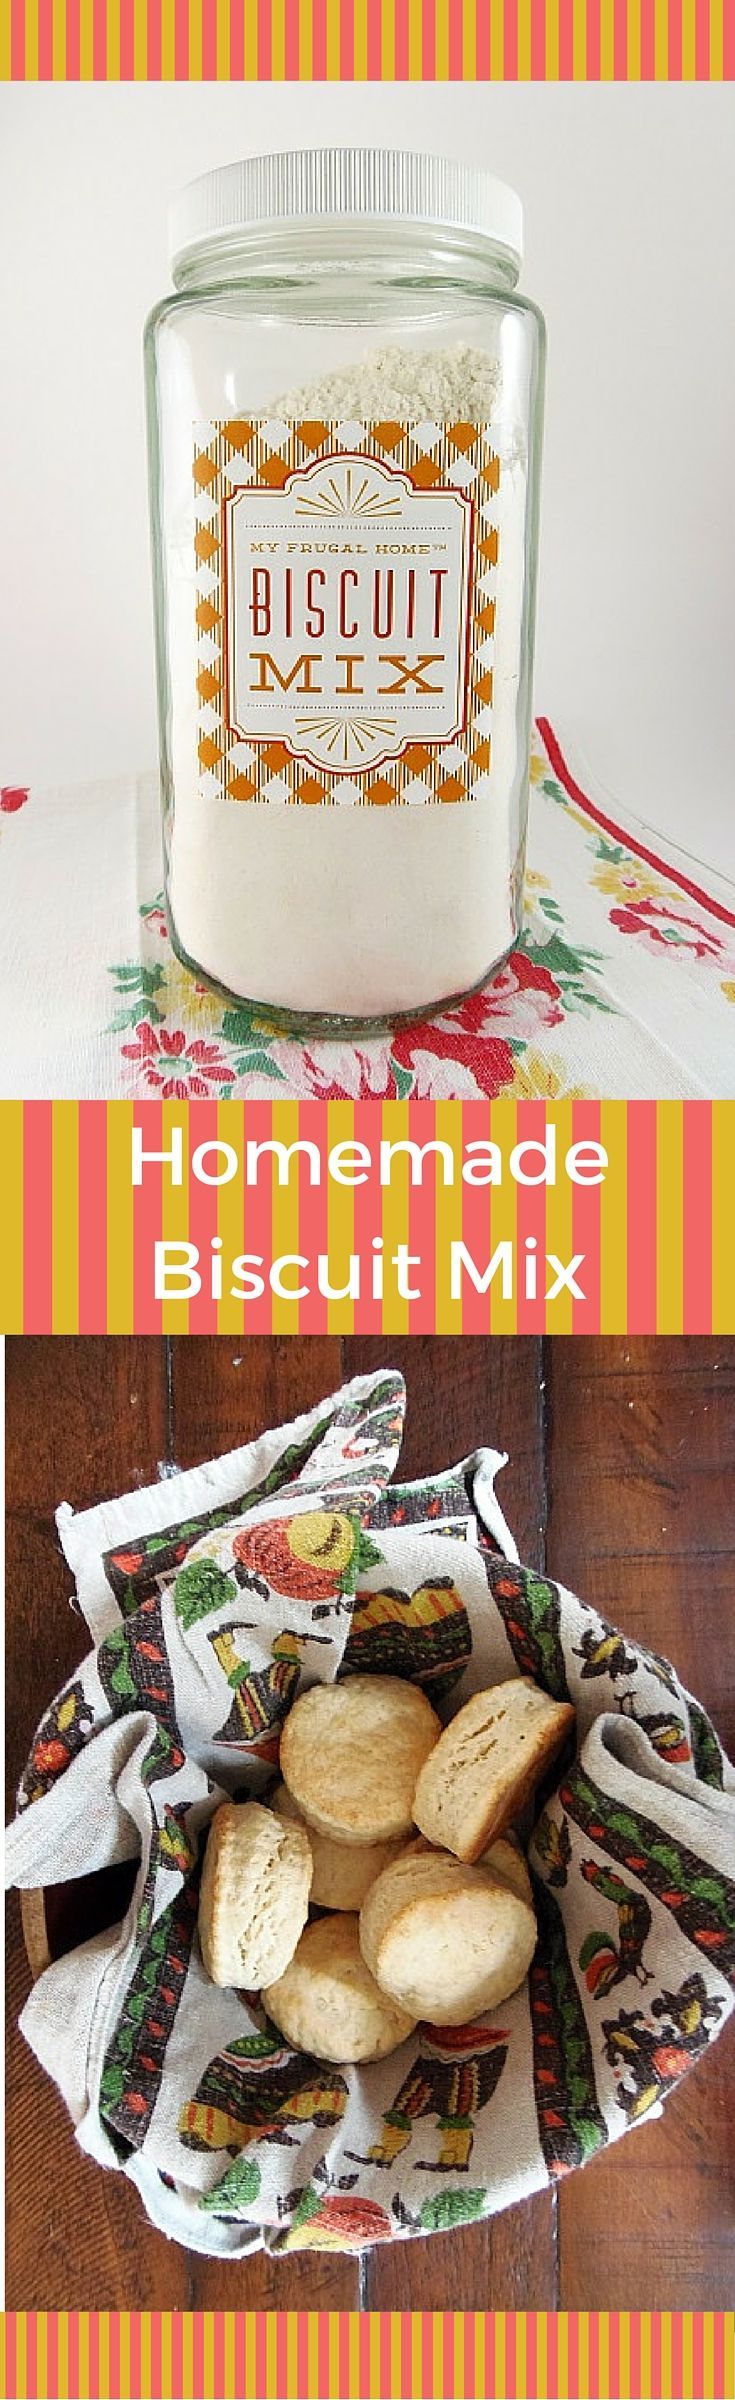 Homemade Biscuit Mix - with free printable label